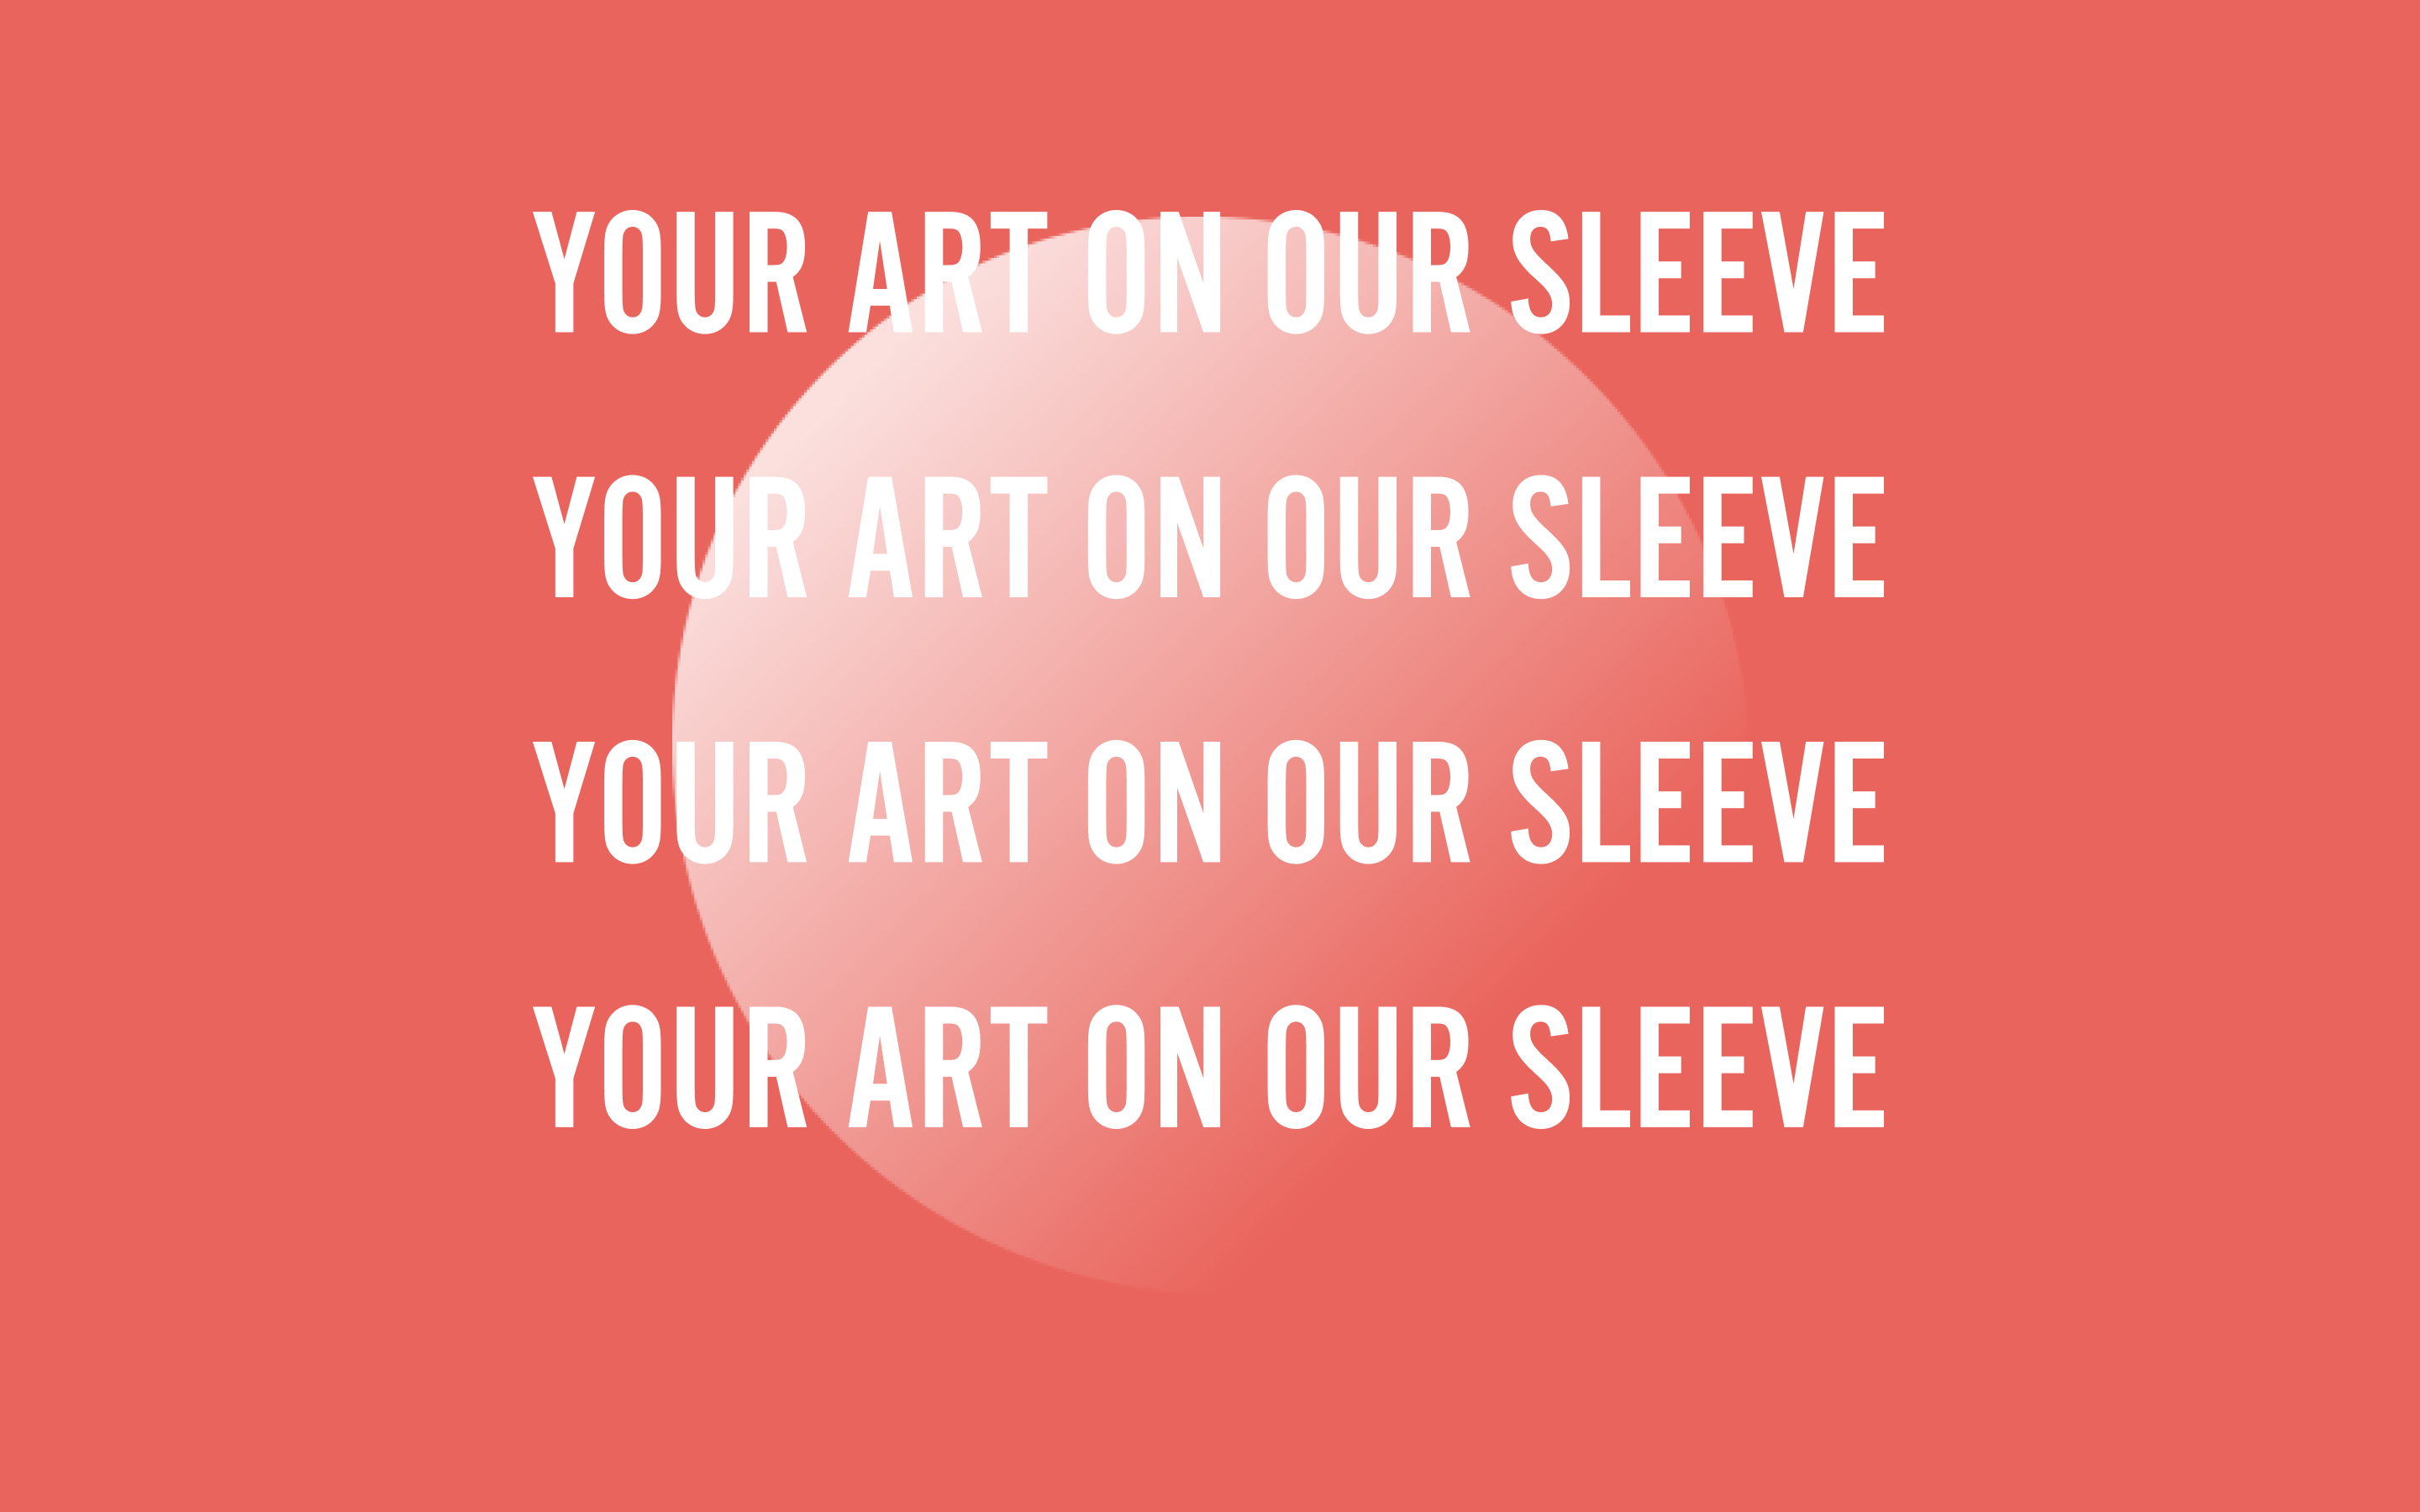 An art piece reading 'your art on our sleeve' repeated 4 times